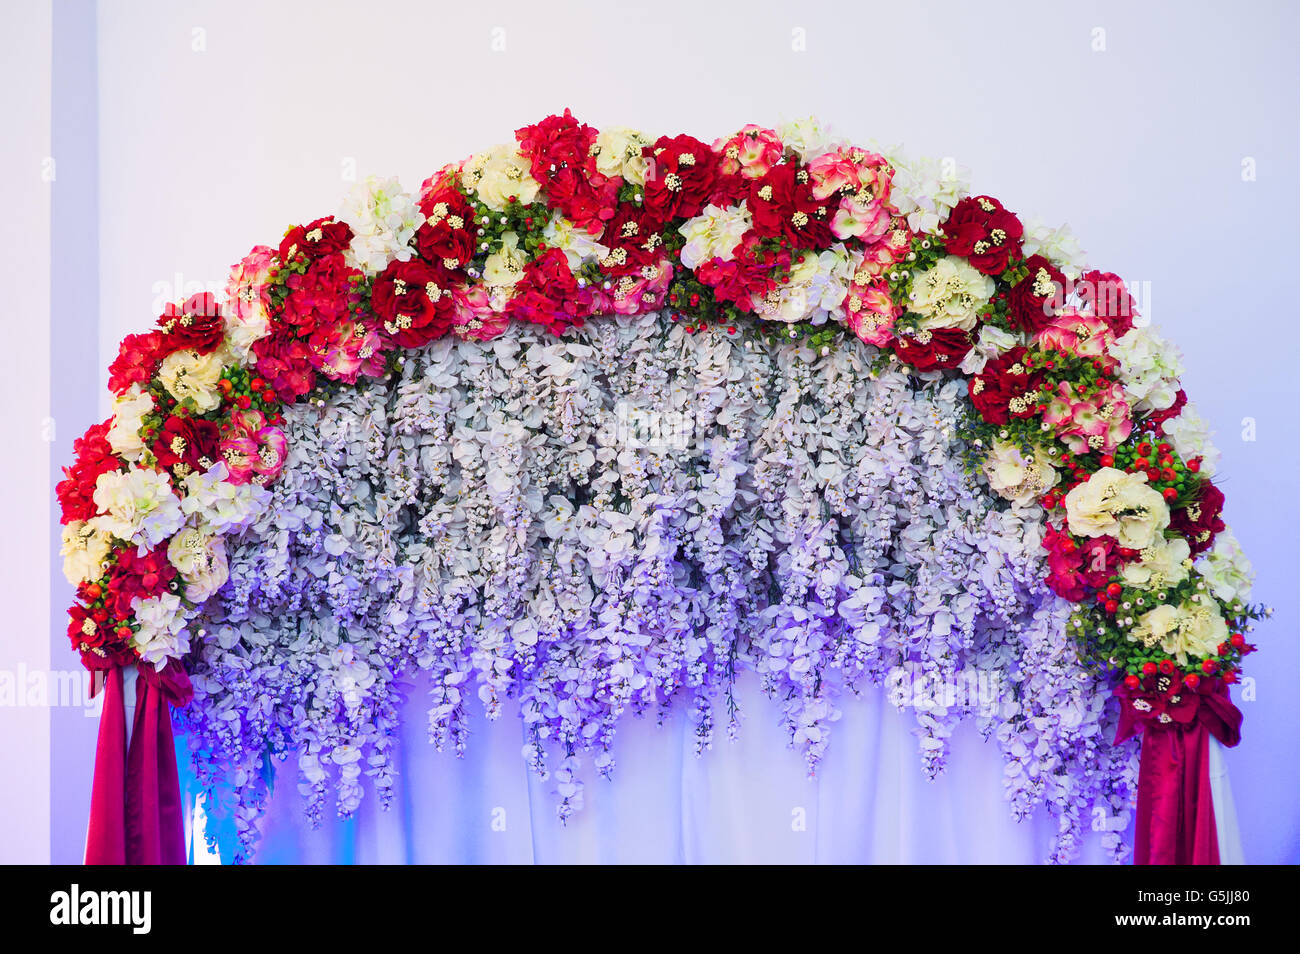 Beautiful wedding arch decorated with pink and red flowers indoors beautiful wedding arch decorated with pink and red flowers indoors junglespirit Choice Image